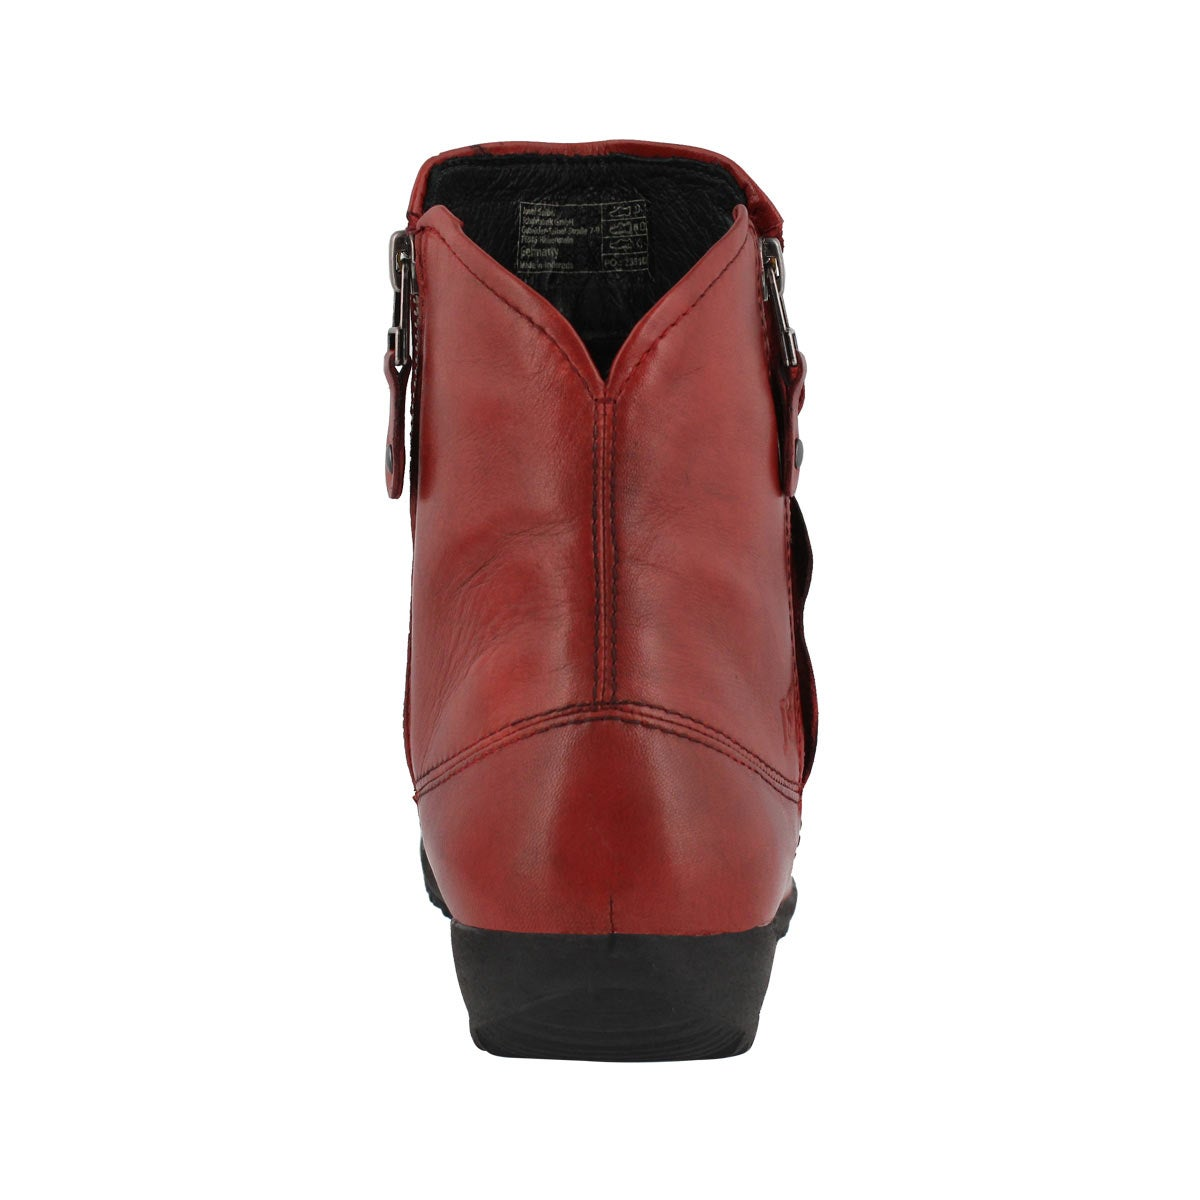 Lds Naly 24 carmin side zip ankle boot